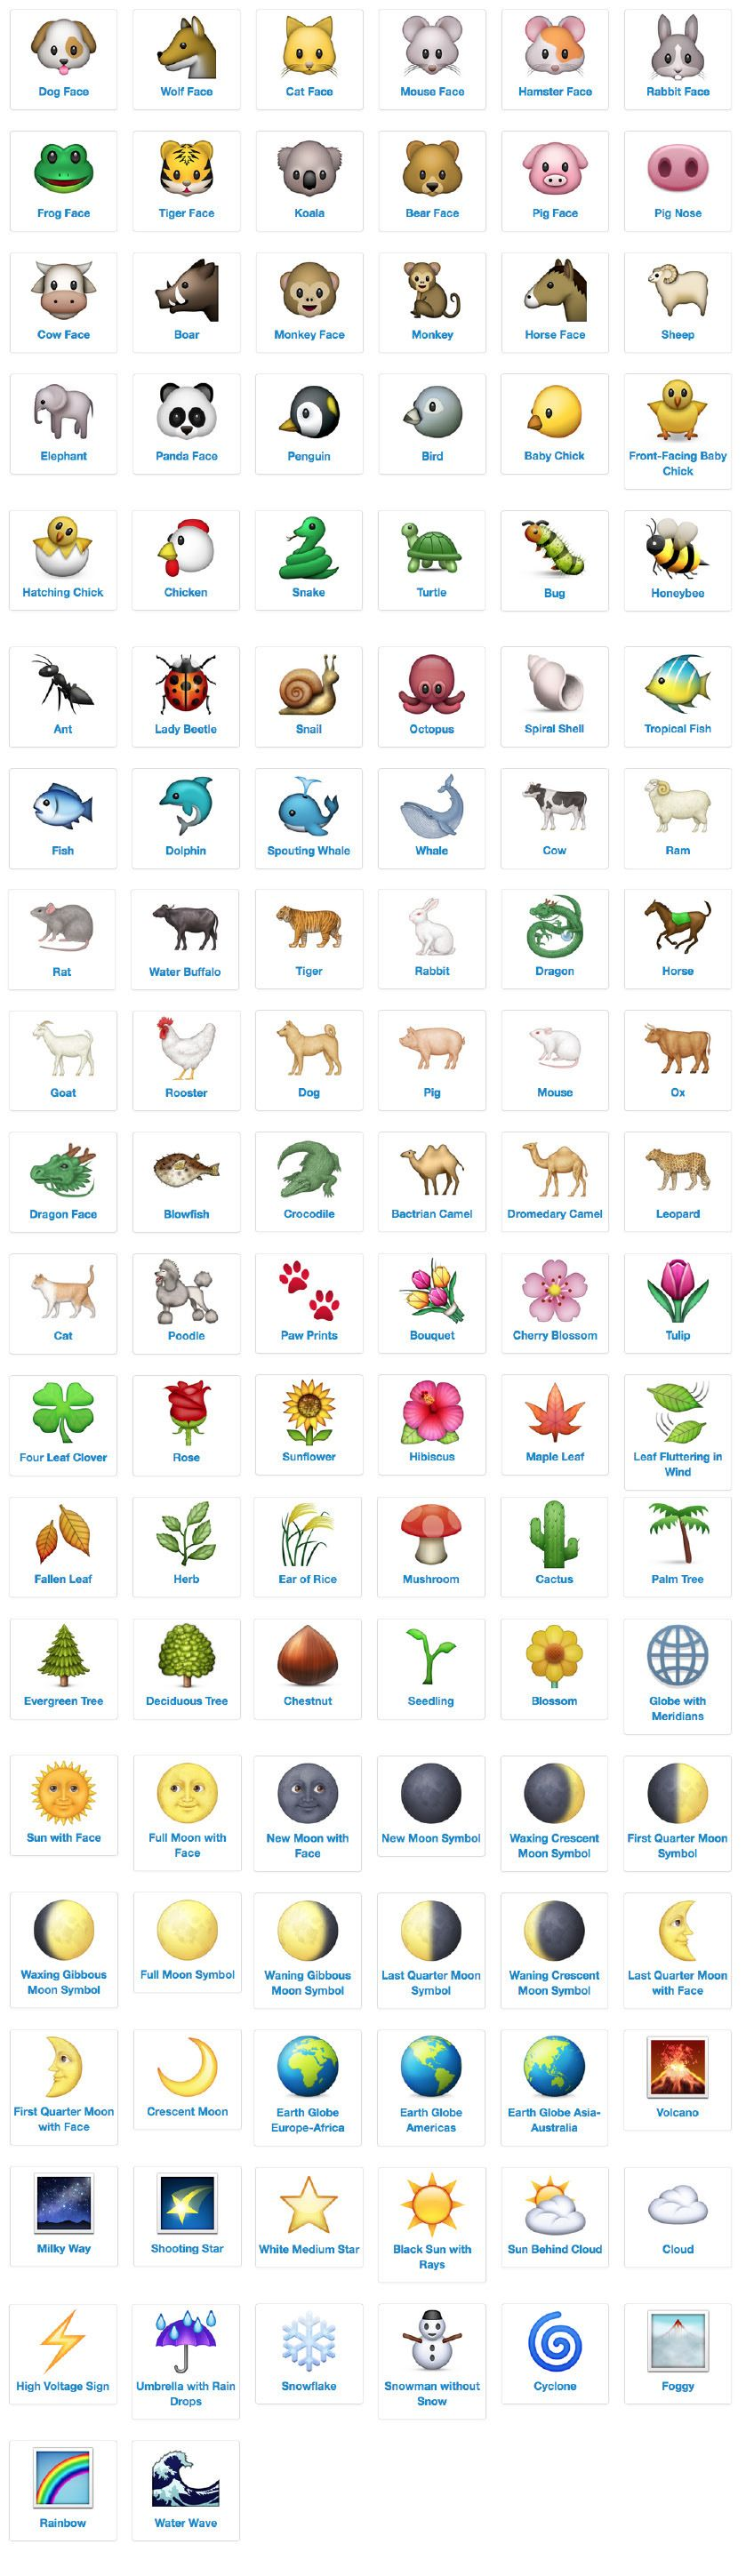 Alien face in box emoji meanings - Emoji Icon List Nature And Animals With Meanings And Definitions